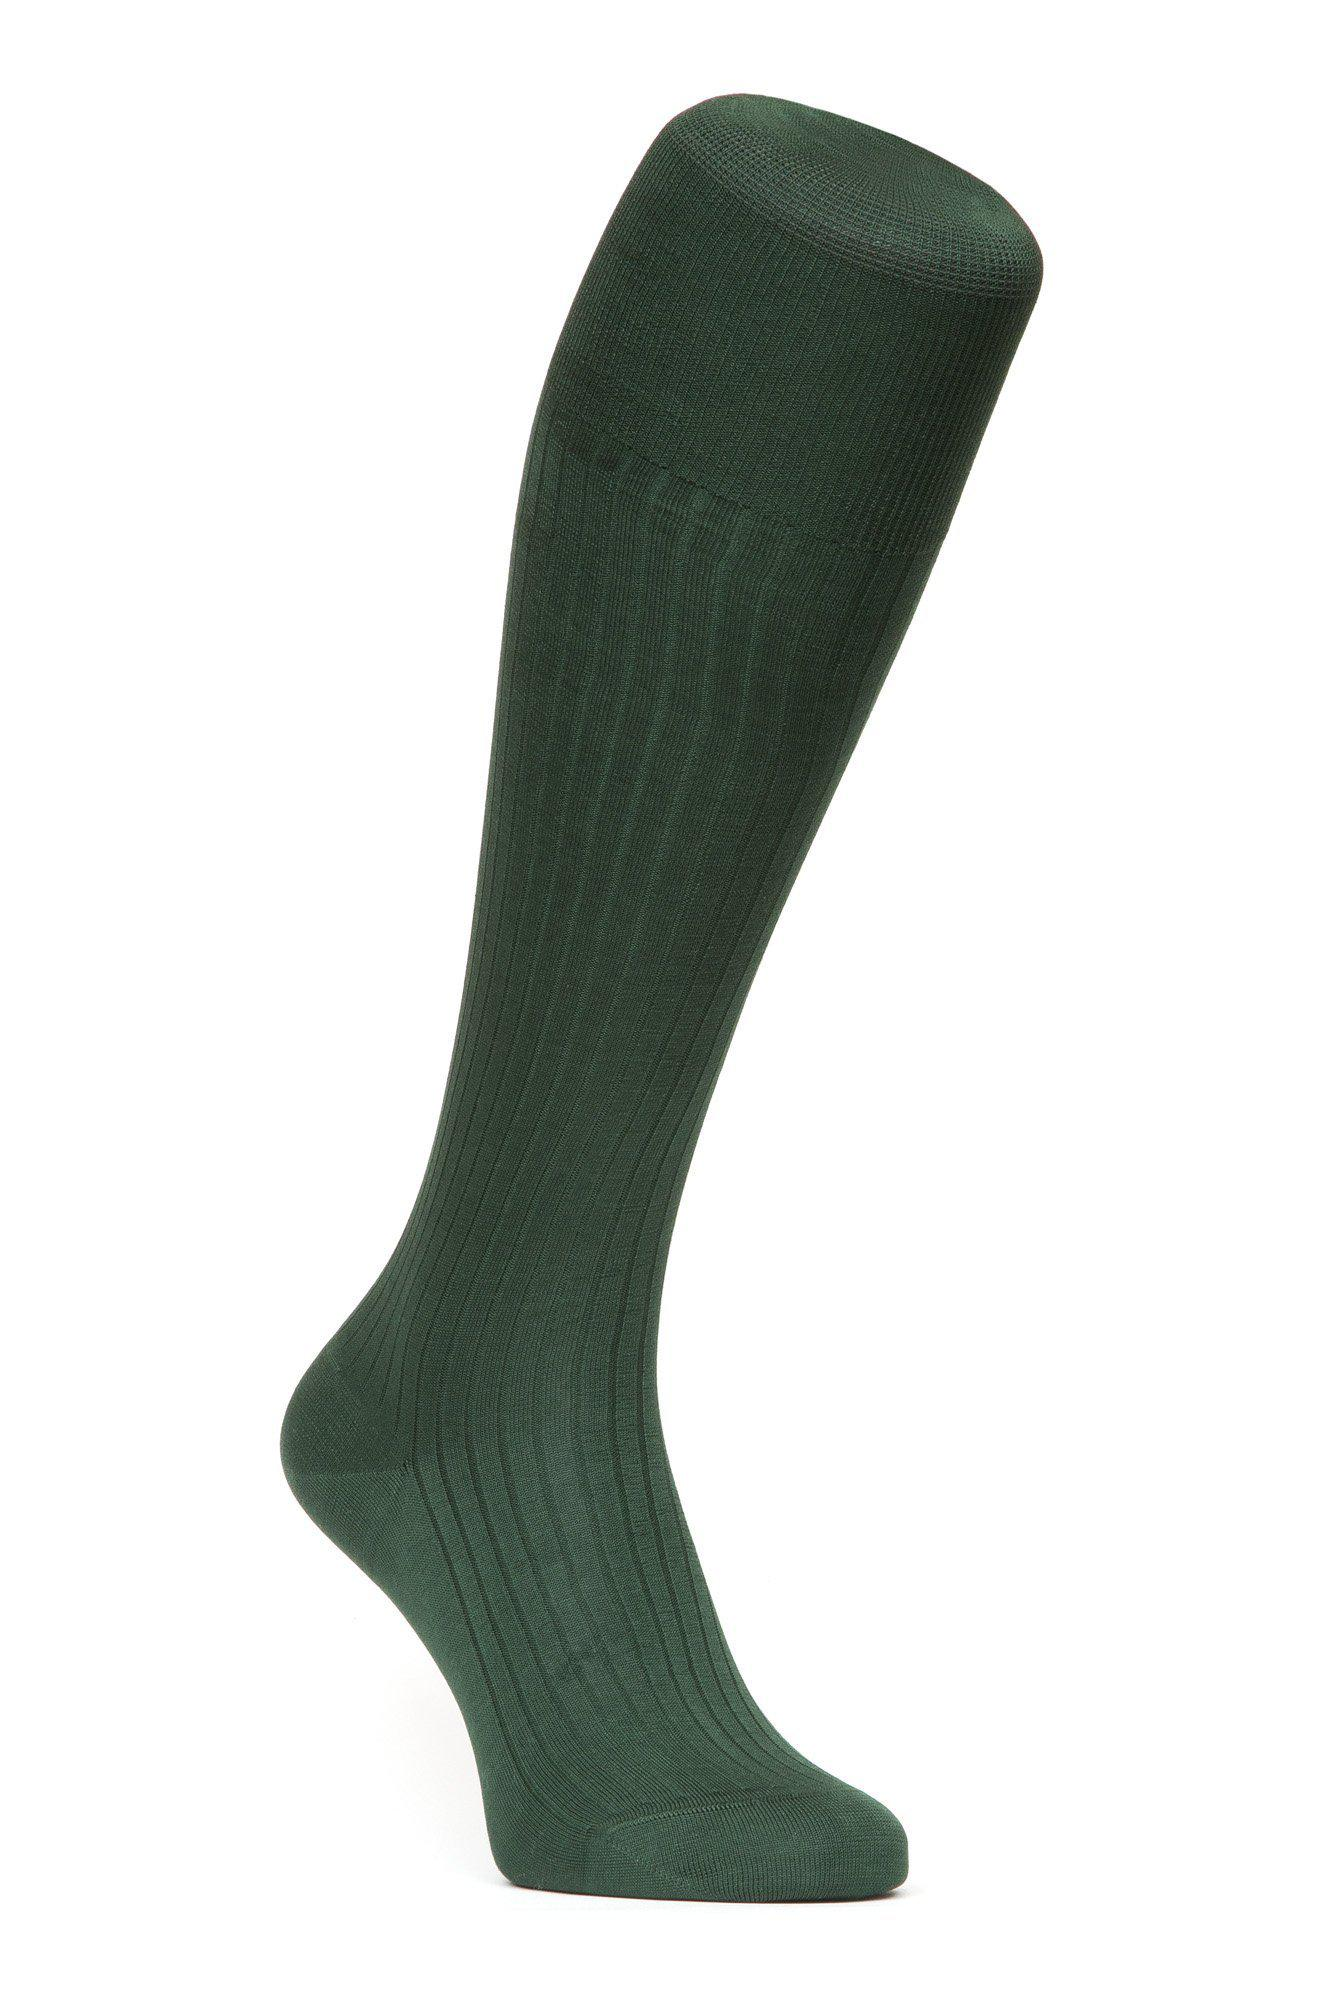 J.FitzPatrick Footwear - Egyptian Cotton Lisle Knee-High Socks - Dark Green